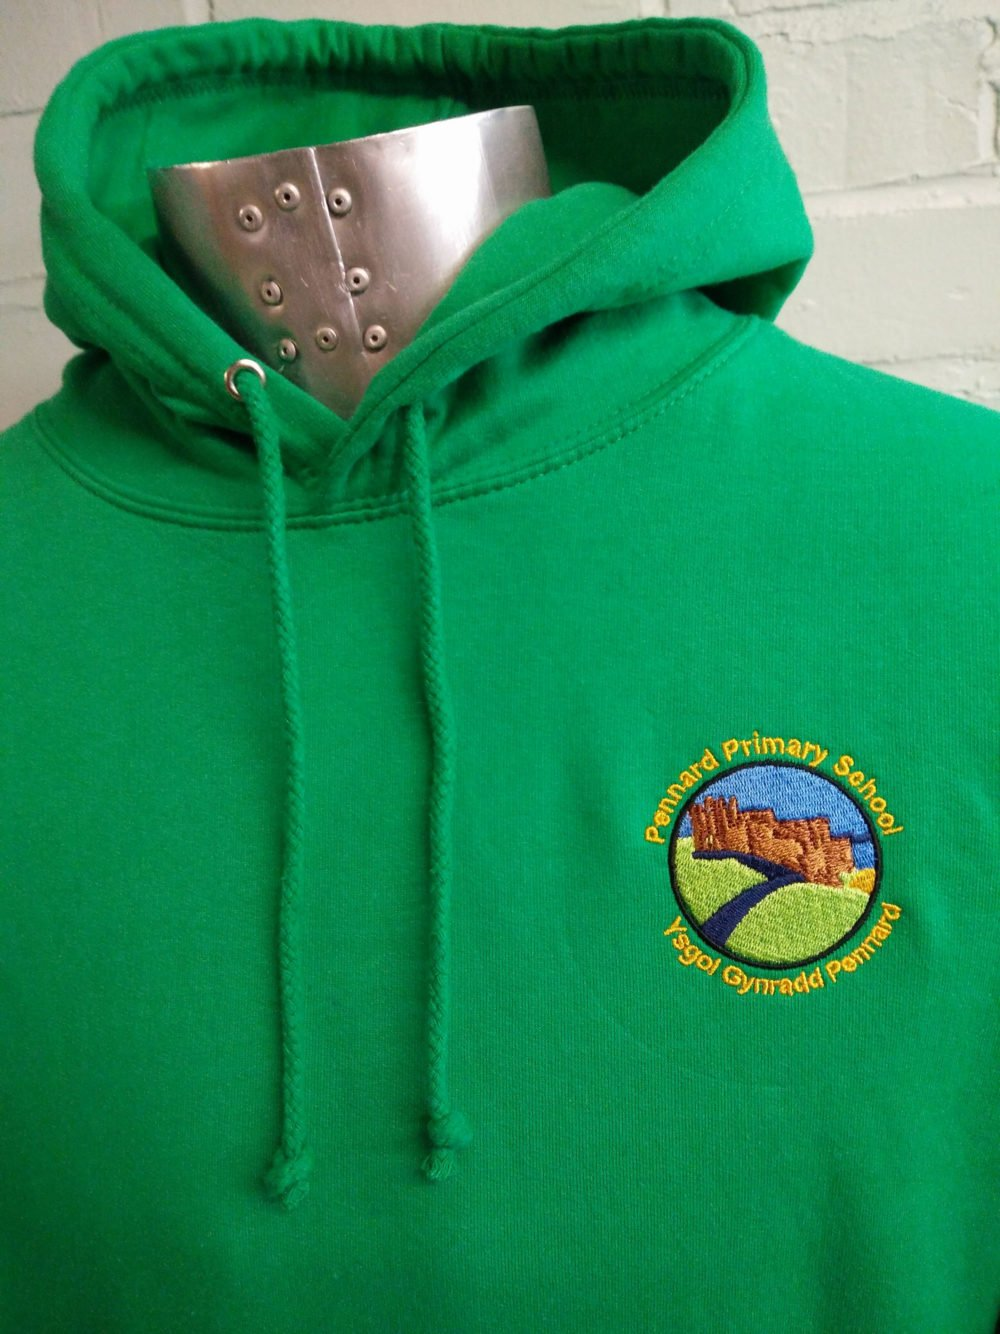 Pennard Leavers Hoodies 2018 Update